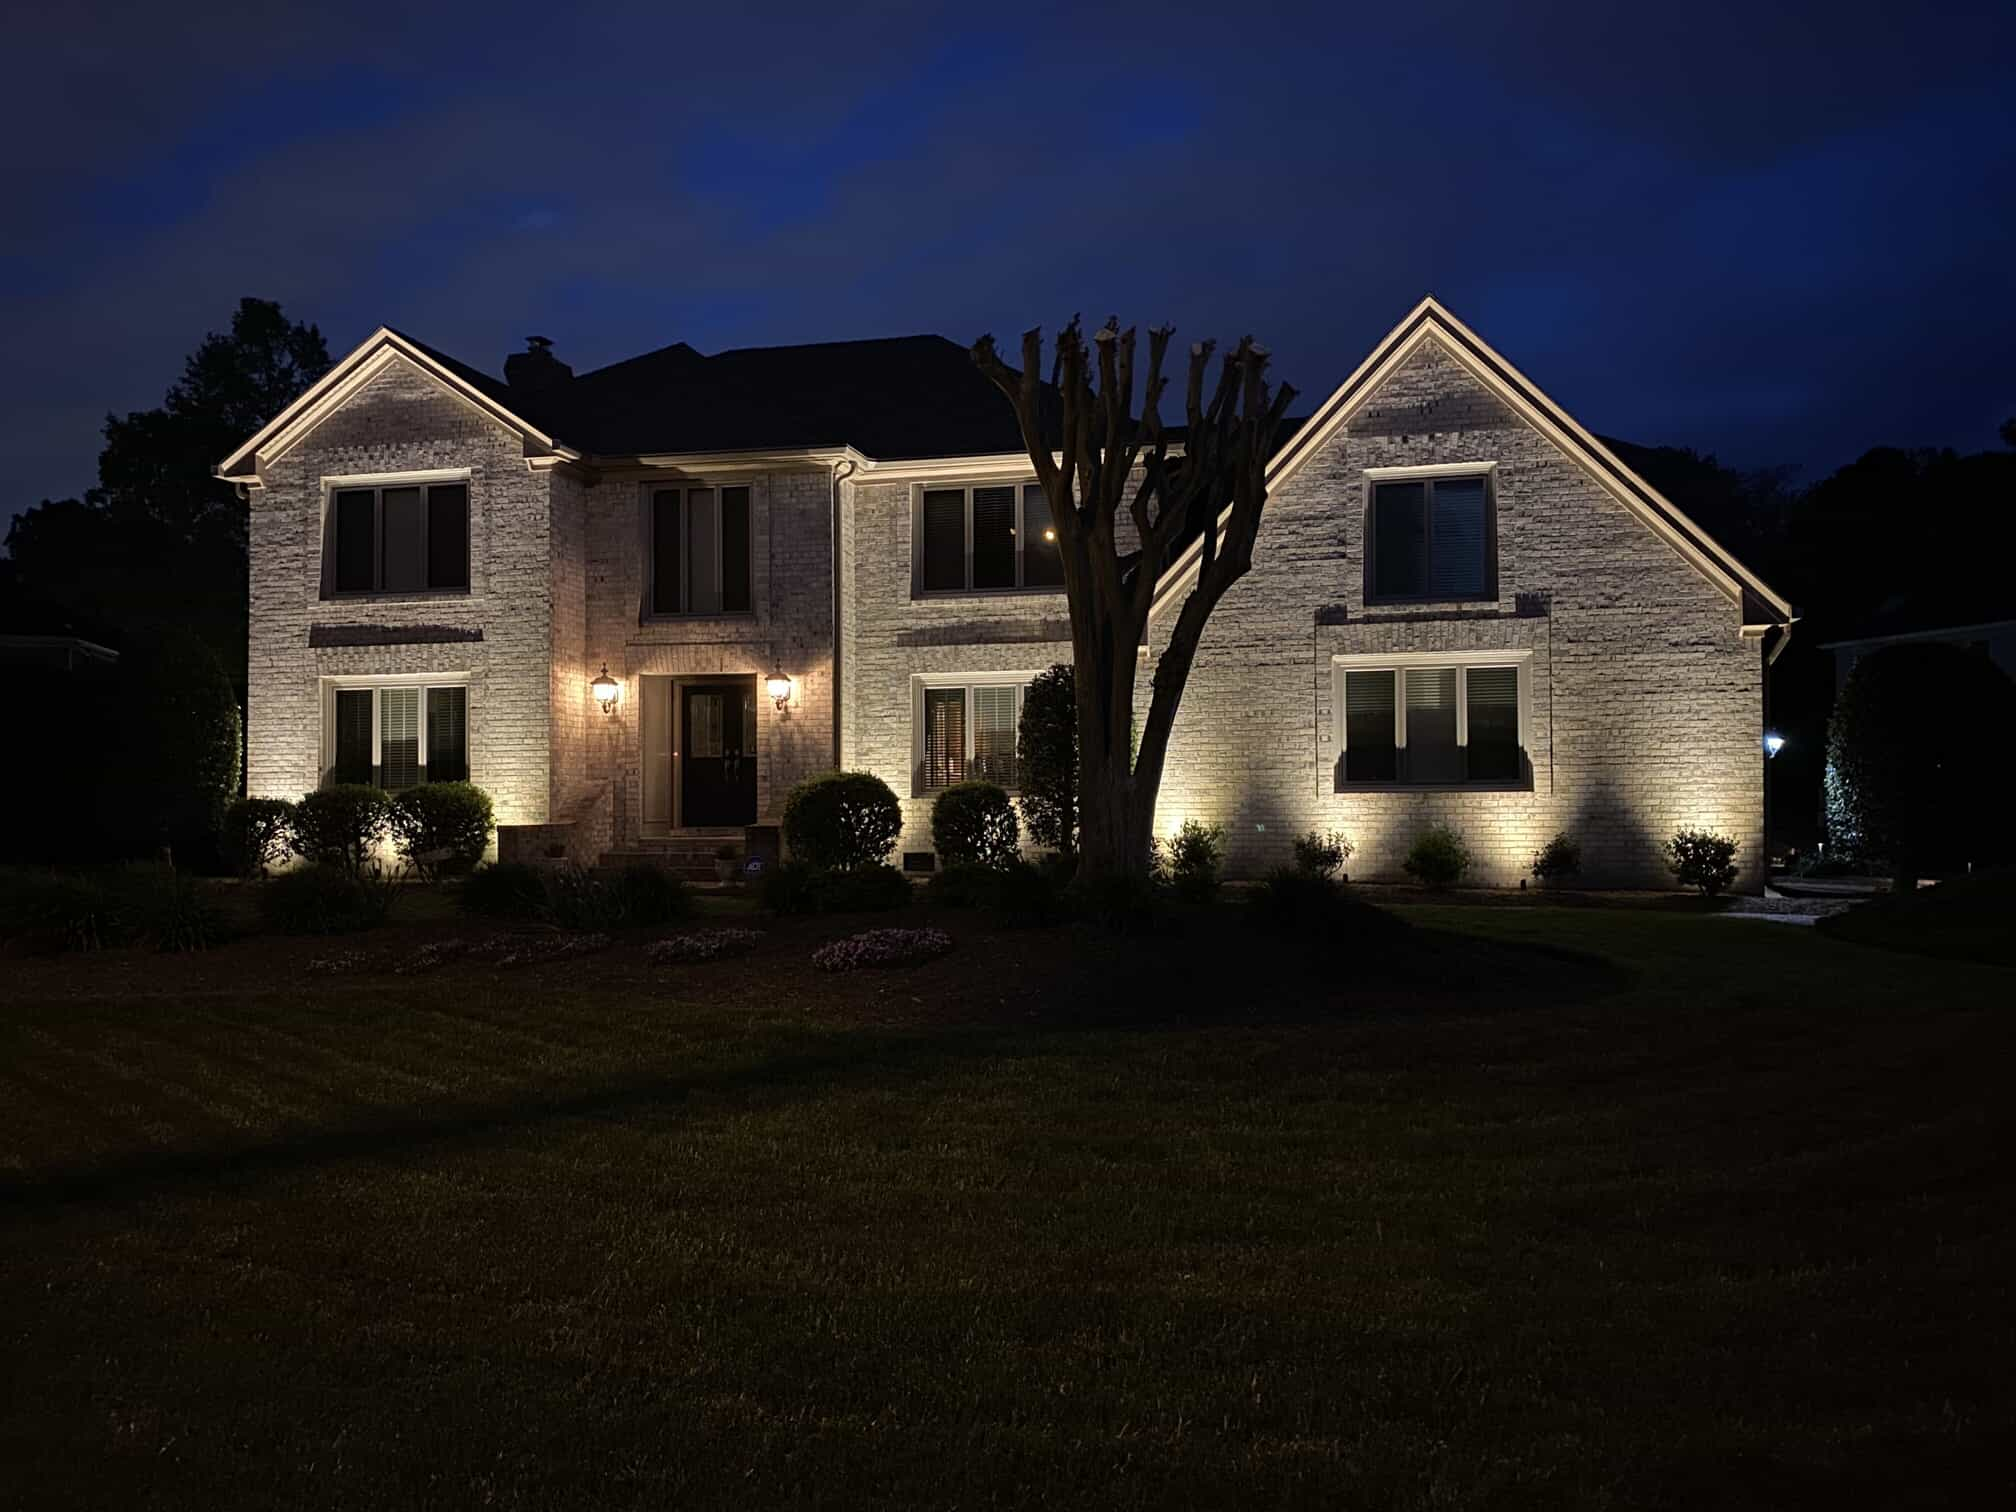 outdoor illuminating lights on a home at night